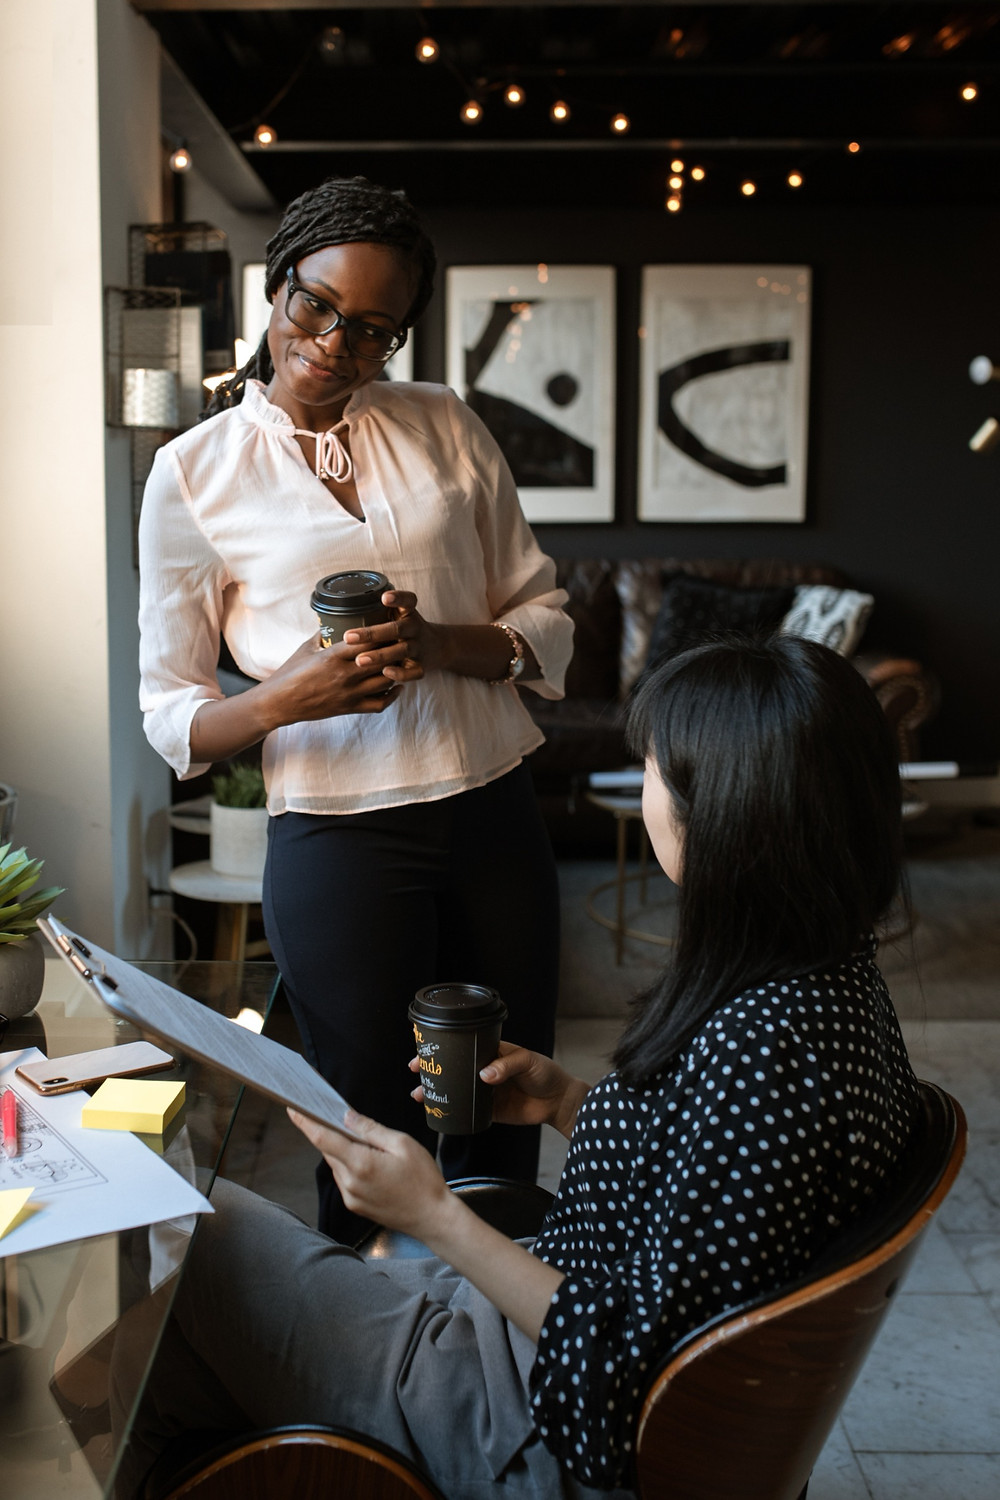 Two women talking in a coffee shop. The one facing the camera is smiling and wearing black frame glasses, a pink blouse and black slacks, holding a to-go coffee up, and standing. The second is seated with her back to the camera, is wearing a black with white polka-dot blouse, gray slacks, and holding a clipboard and to-go coffee cup.